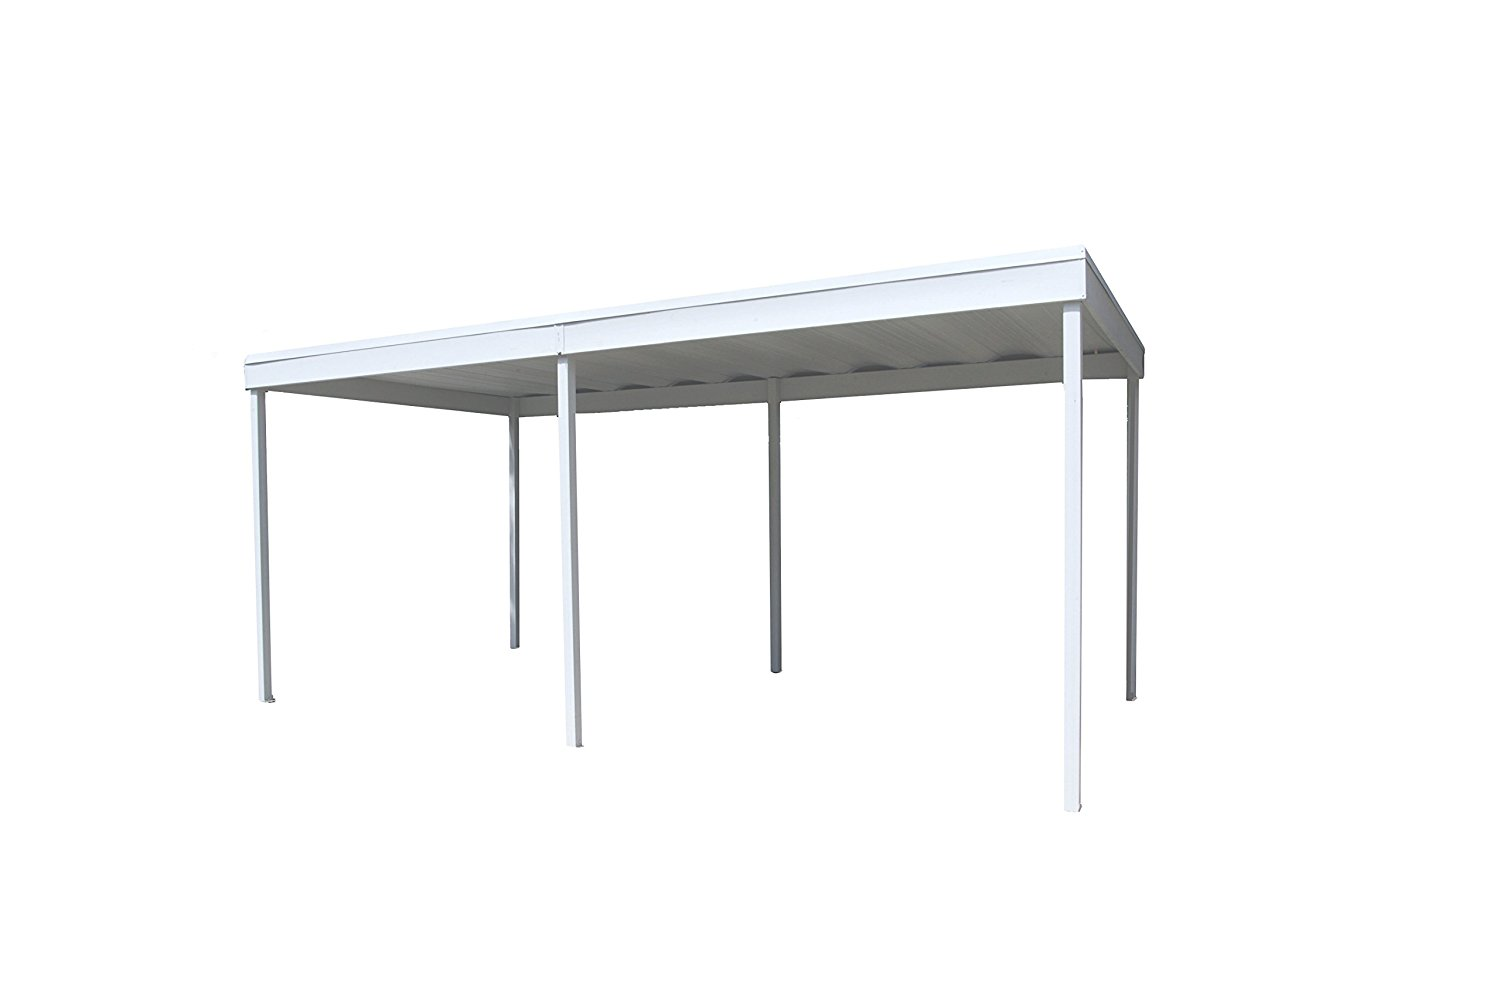 Freestanding Carport/Patio Cover, 10x10, Hot Dipped Galvanized Steel with Vinyl Coating, Eggshell Finish, Flat Roof